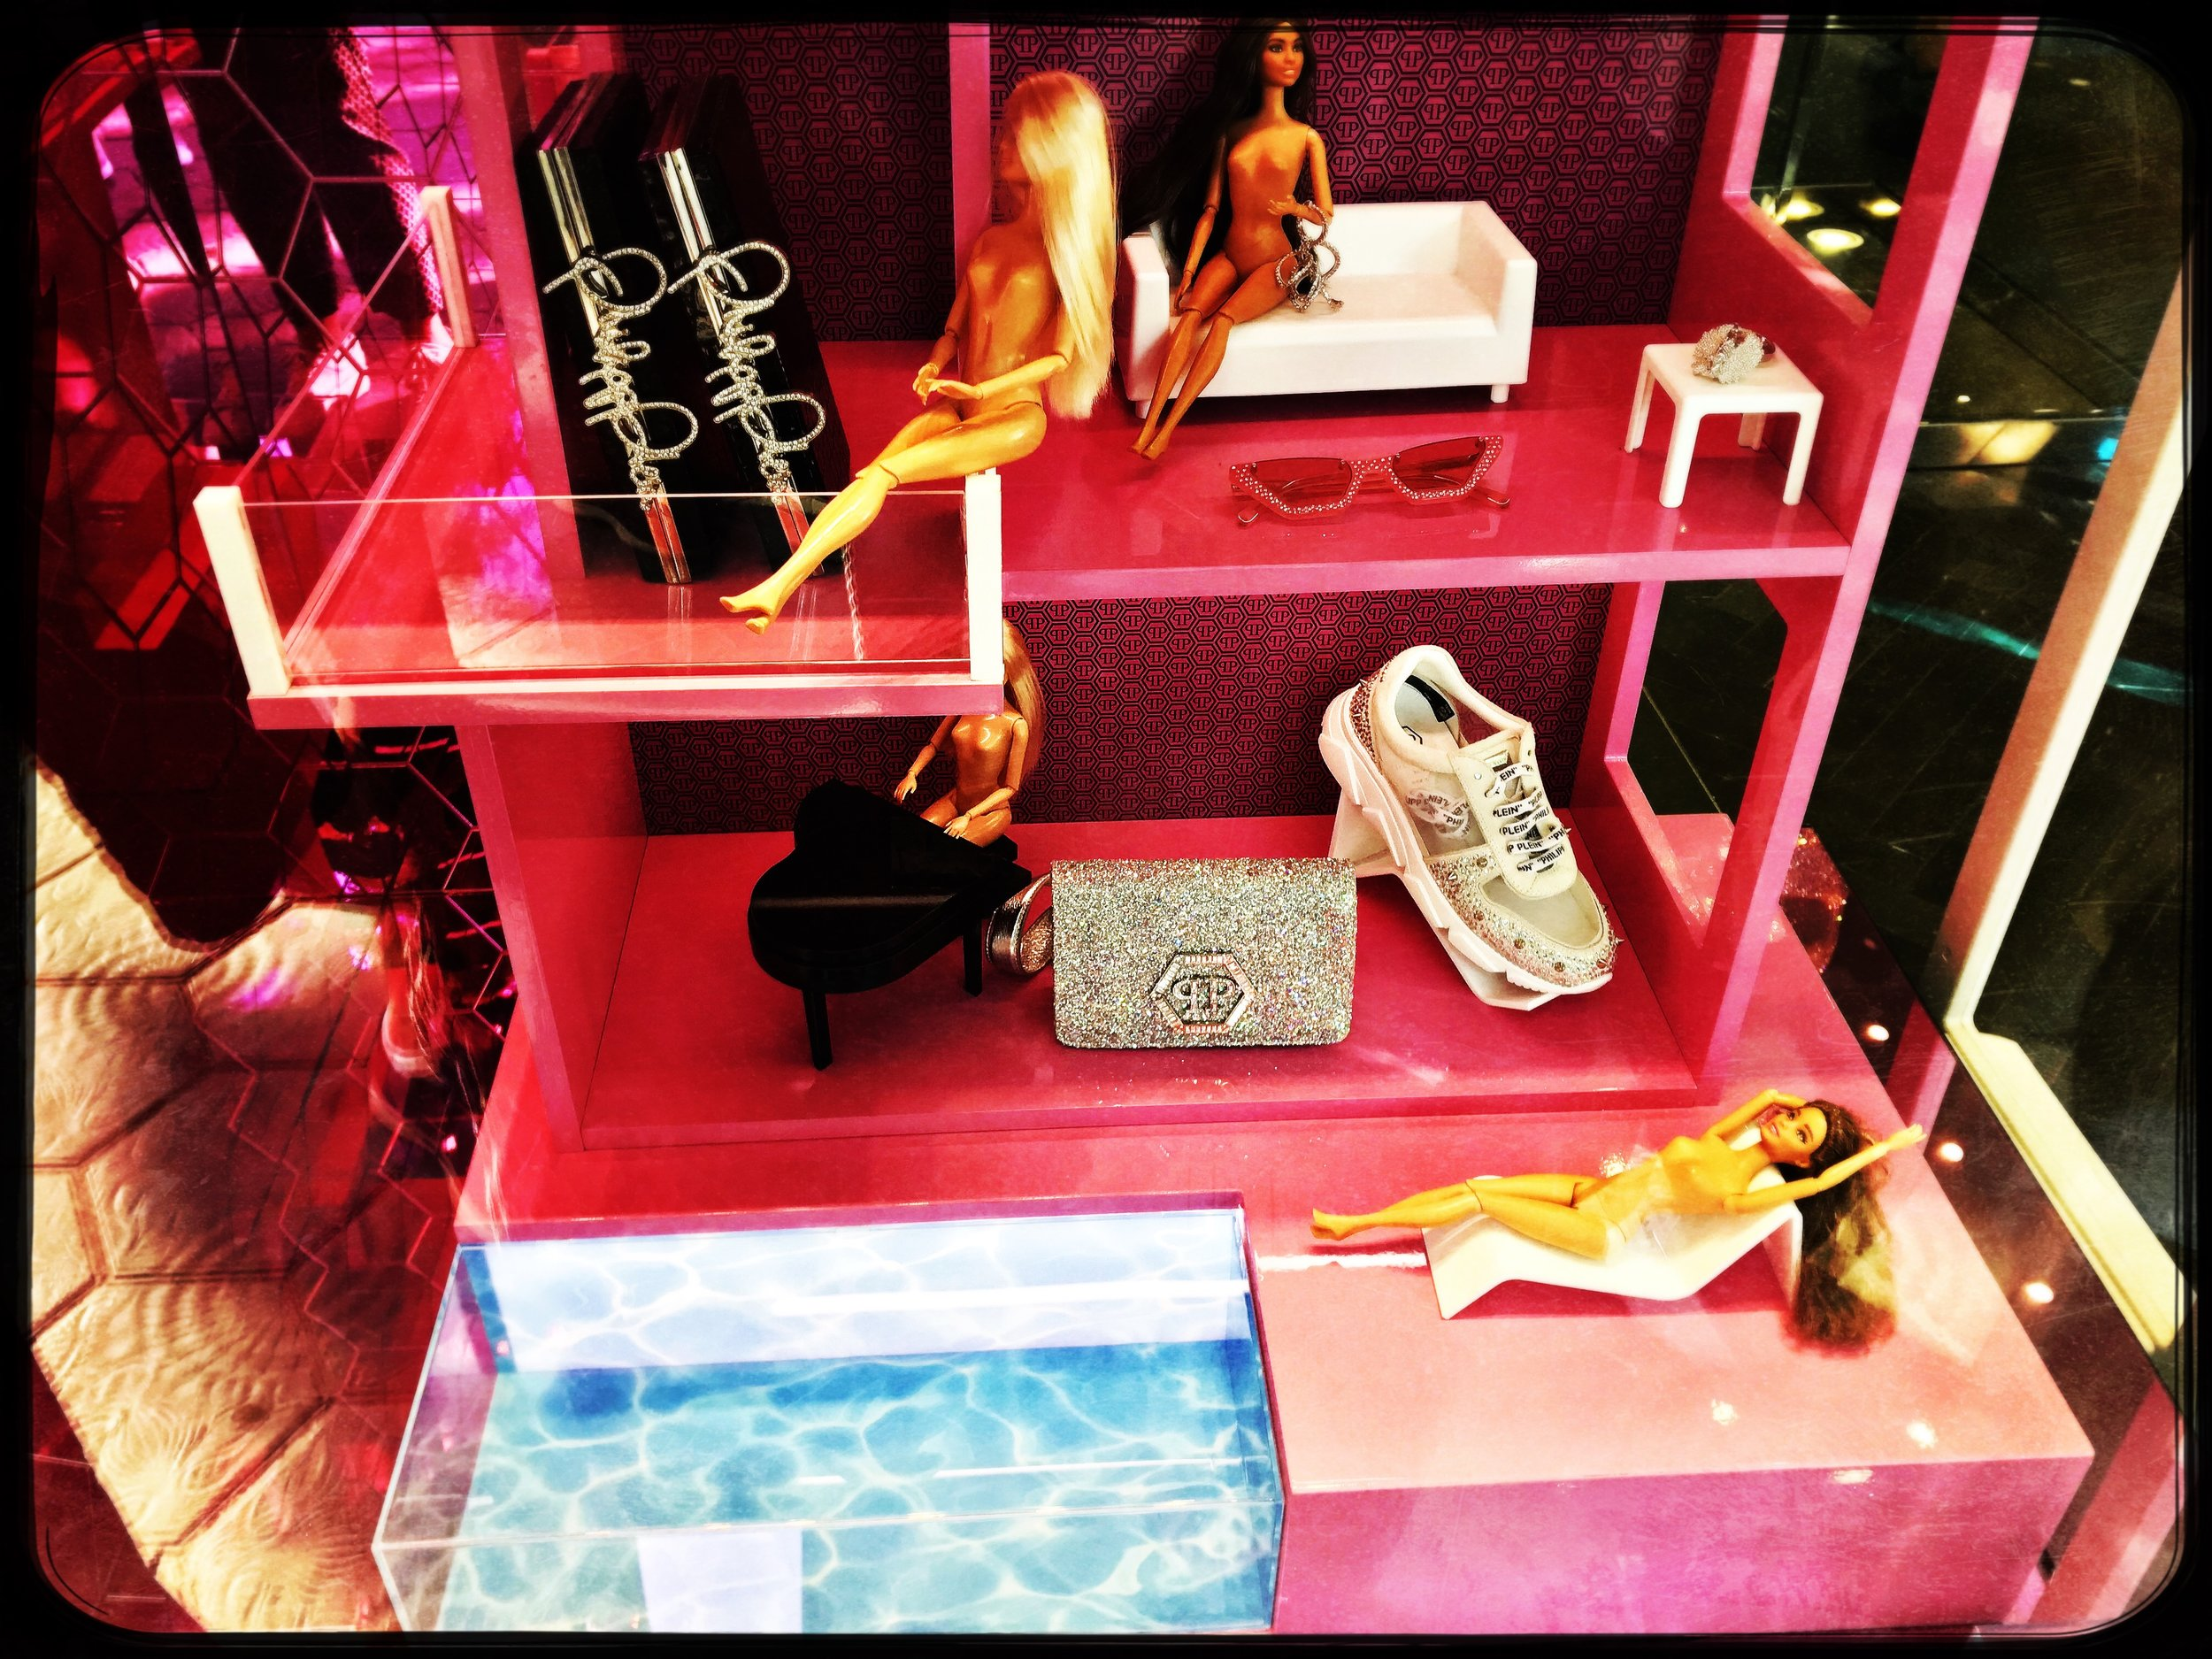 Barbie's friends - a bunch of new, naked Barbies dominate a shoestore display in Barcelona.